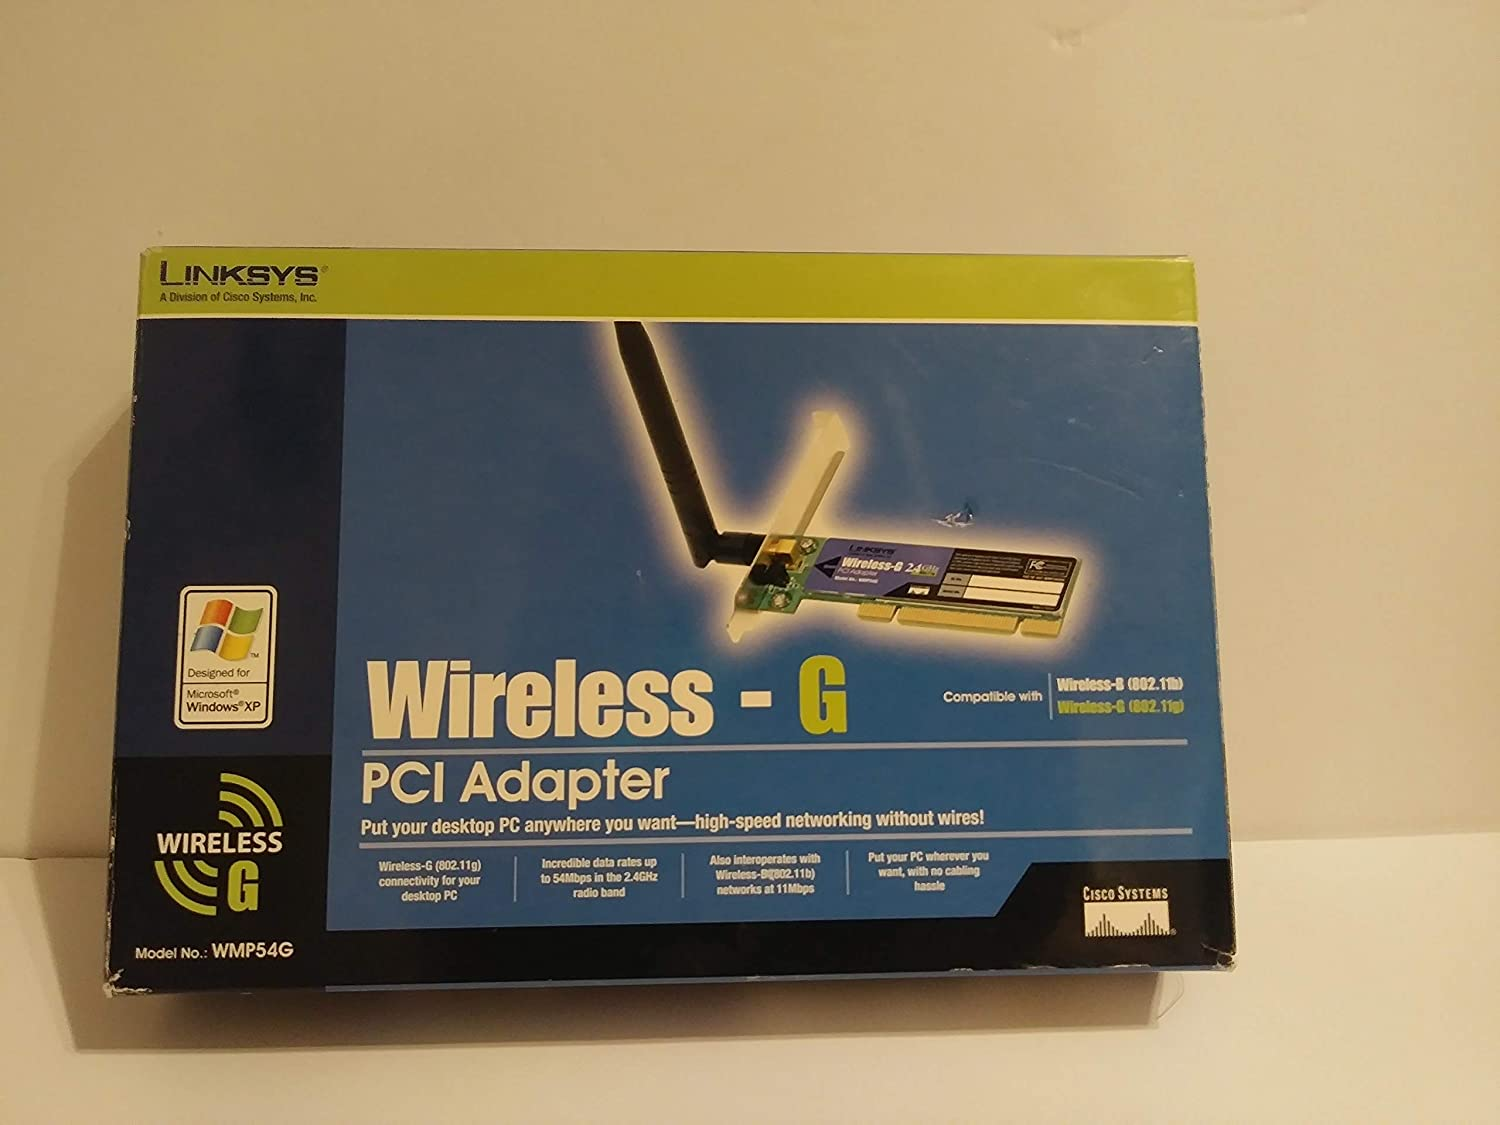 Cisco-Linksys WMP54G Wireless-G PCI Adapter